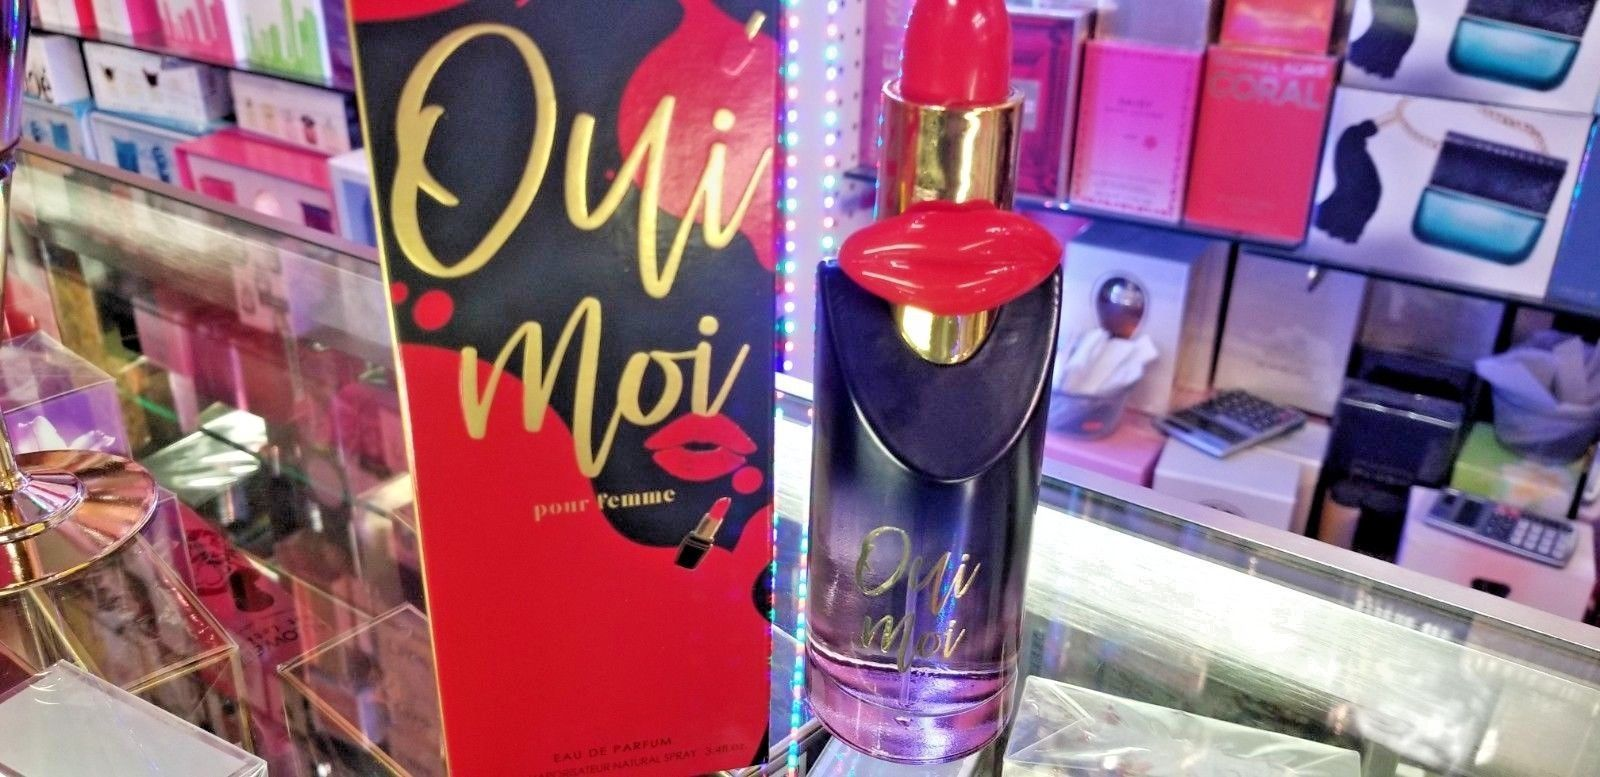 bf5c2a602e Oui Moi Pour Femme by Mirage Brands 100 ml and 50 similar items